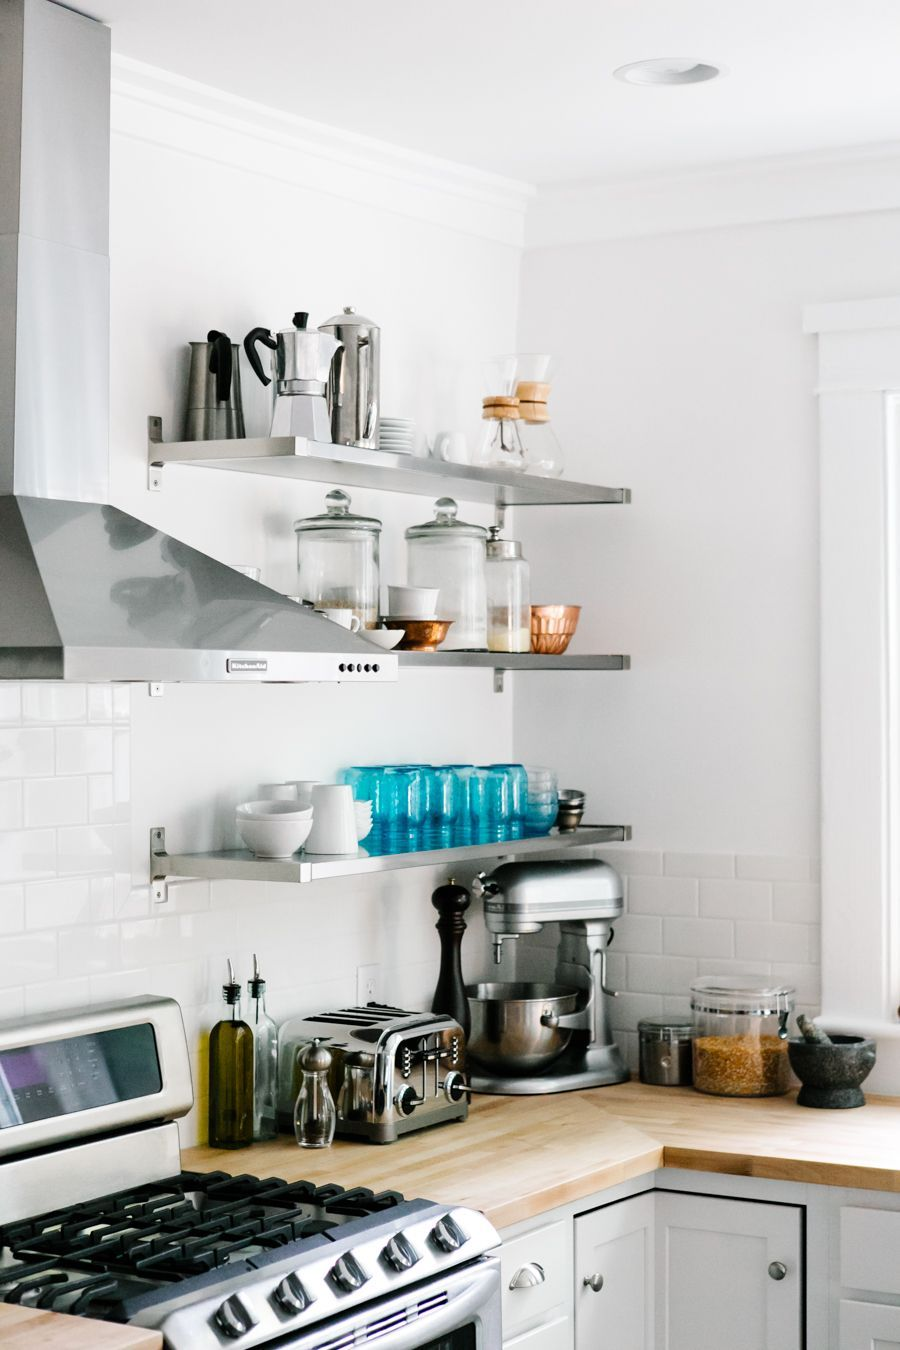 How To Design A Real Life Pinterest Kitchen A Couple Cooks Small Kitchen Design Apartment Kitchen Inspiration Design Small Apartment Kitchen